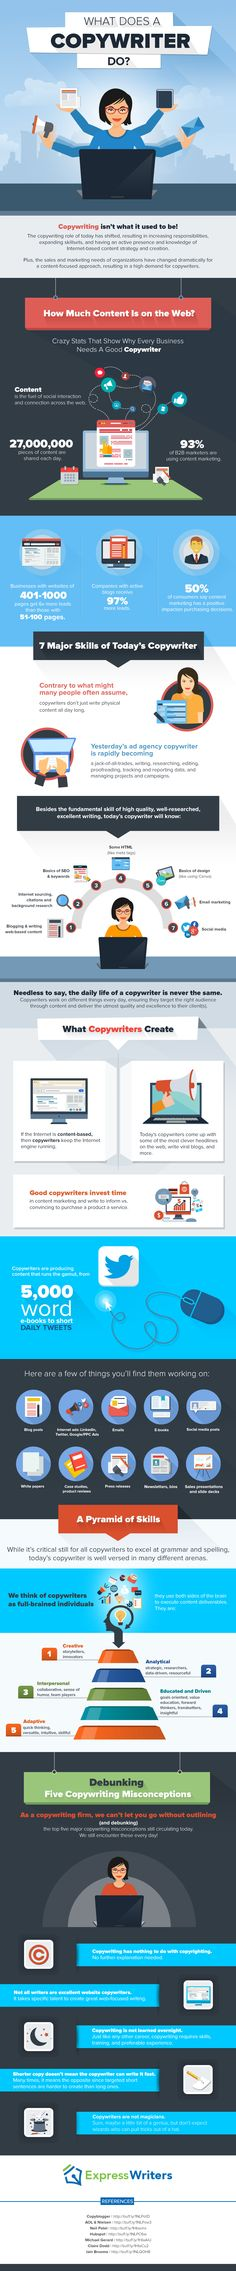 This fun, creative infographic by the team at Express Writers shows exactly what is a copywriter and what does a copywriter do in their day-to-day life.